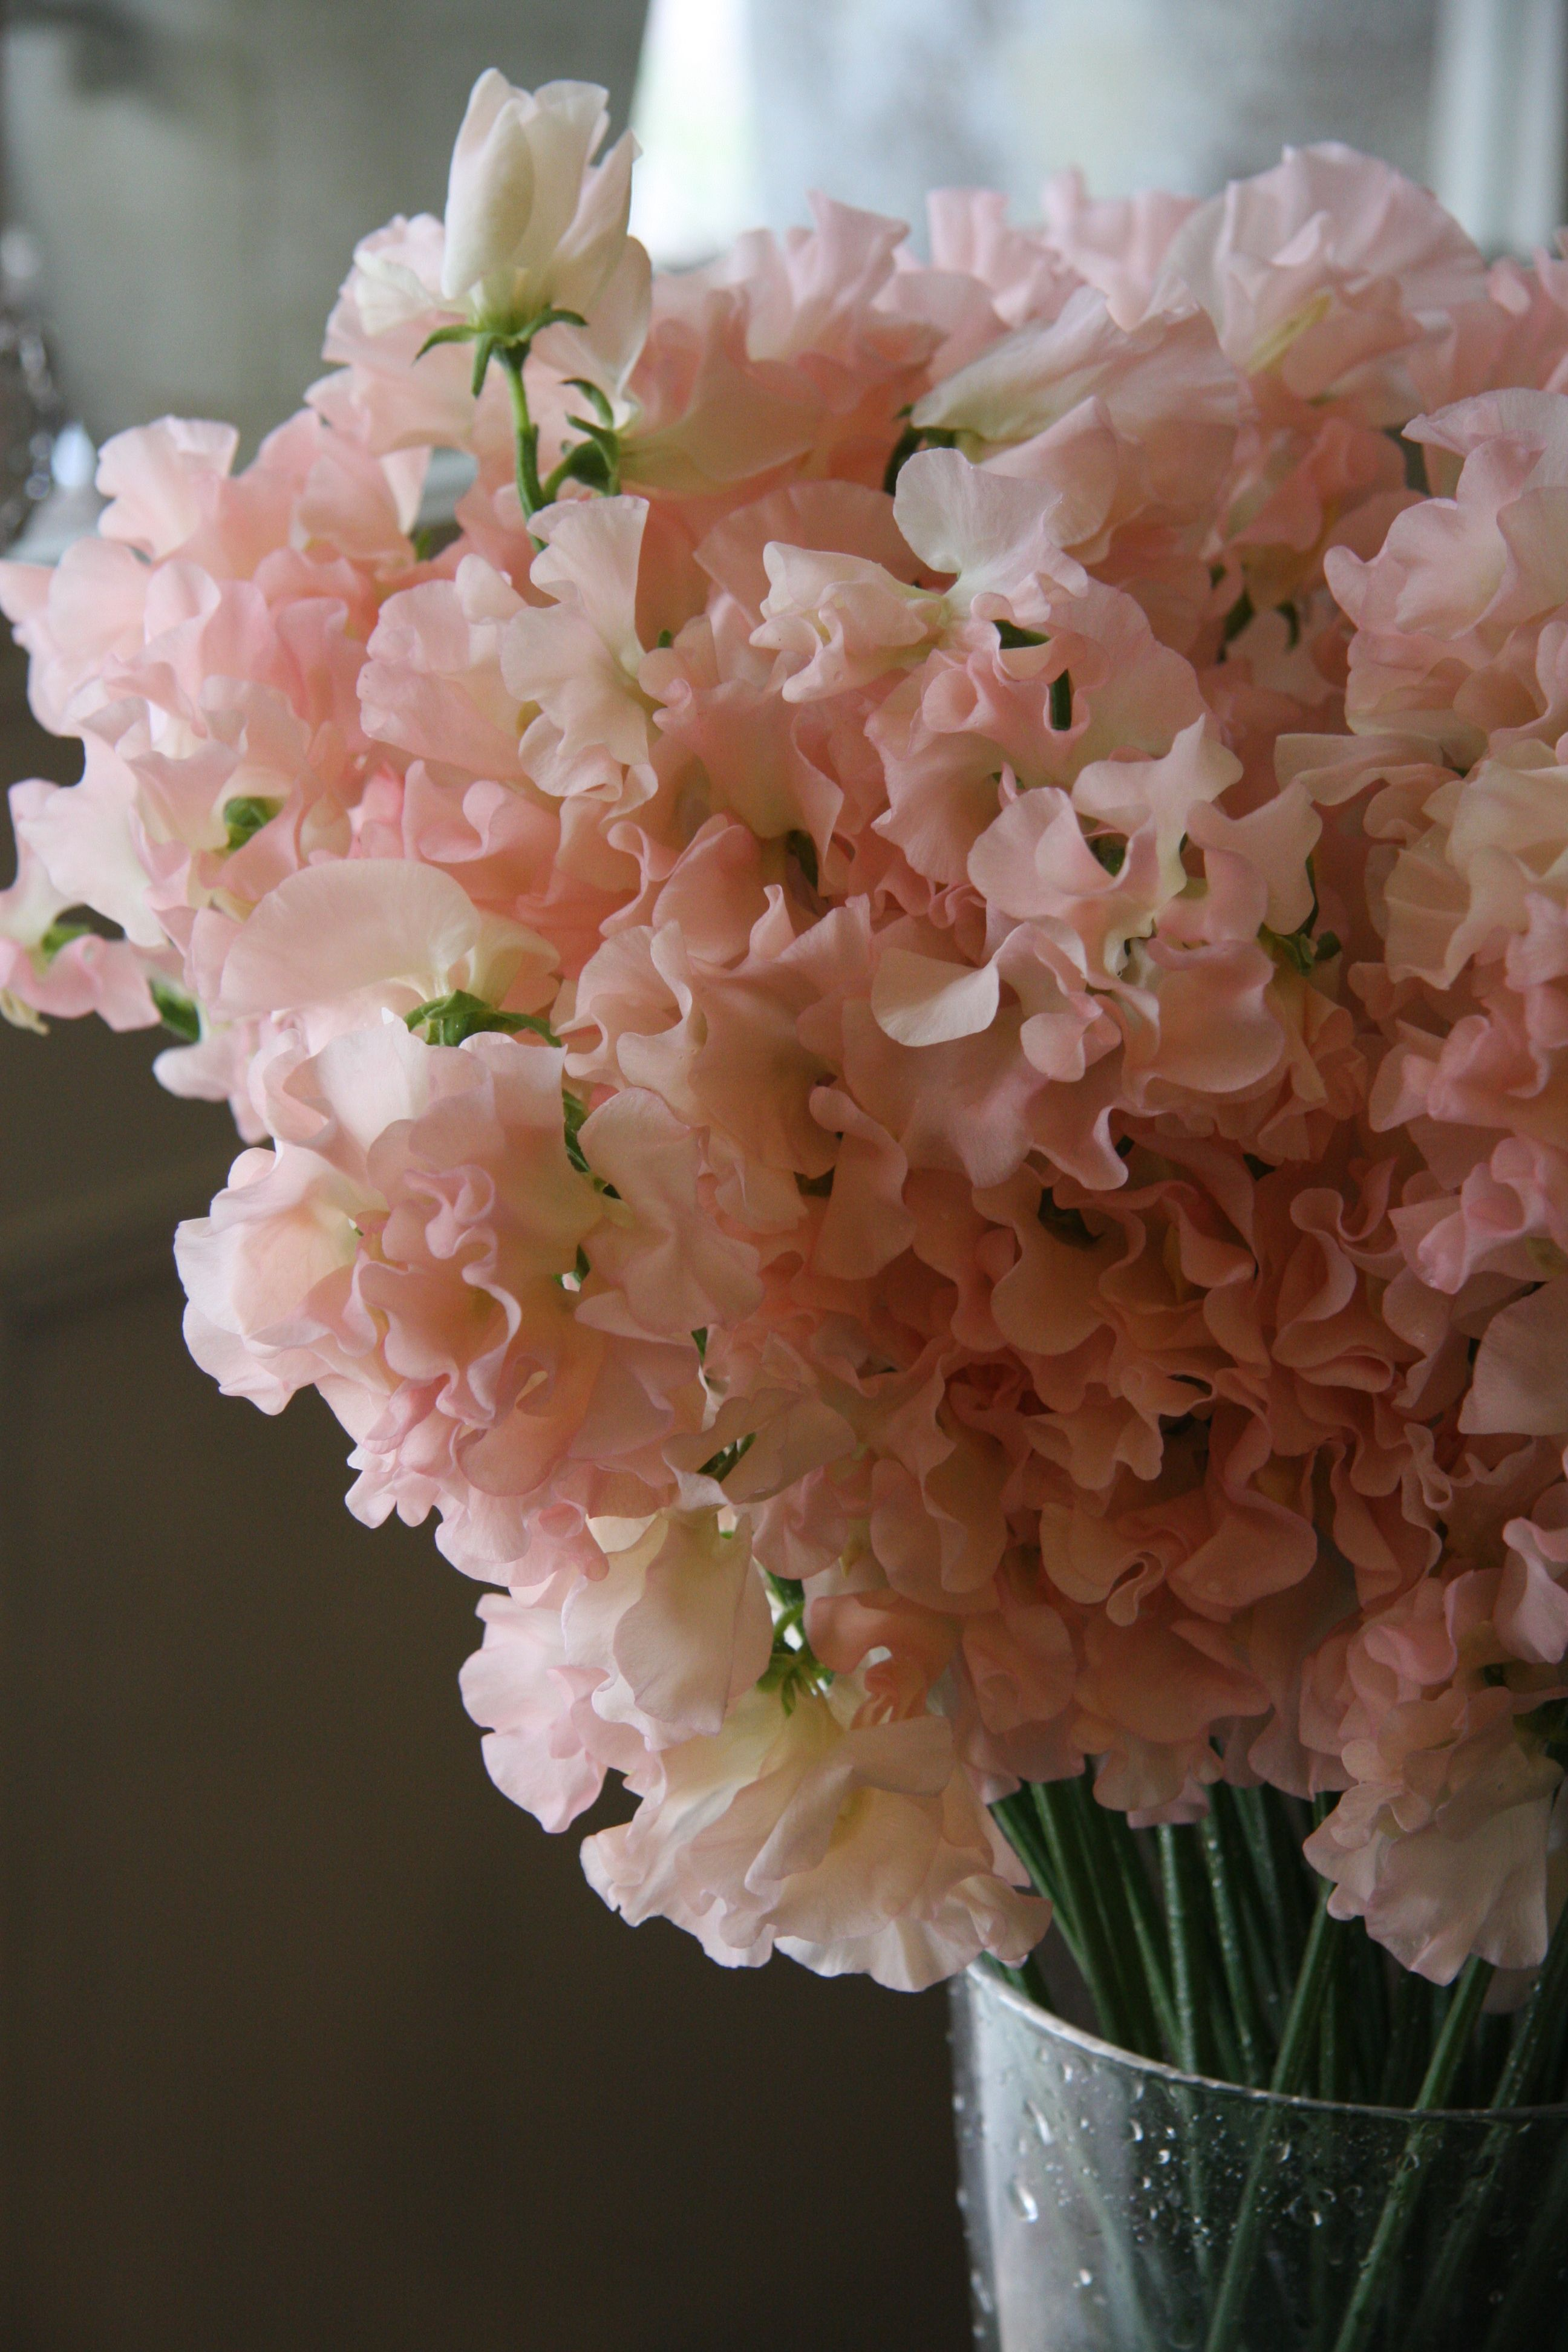 Pale peach and pink Sweet Peas The scent is always incredible